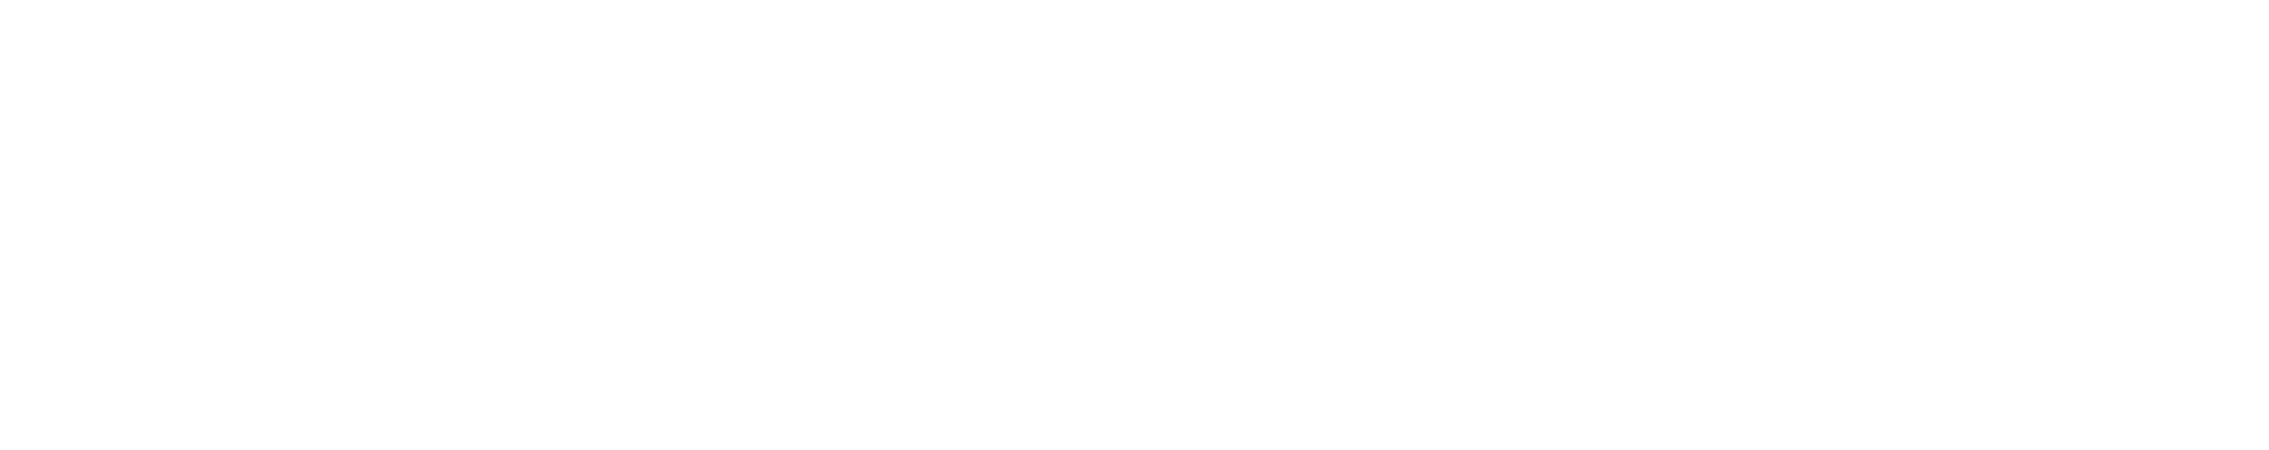 Paragon Analysis Corp